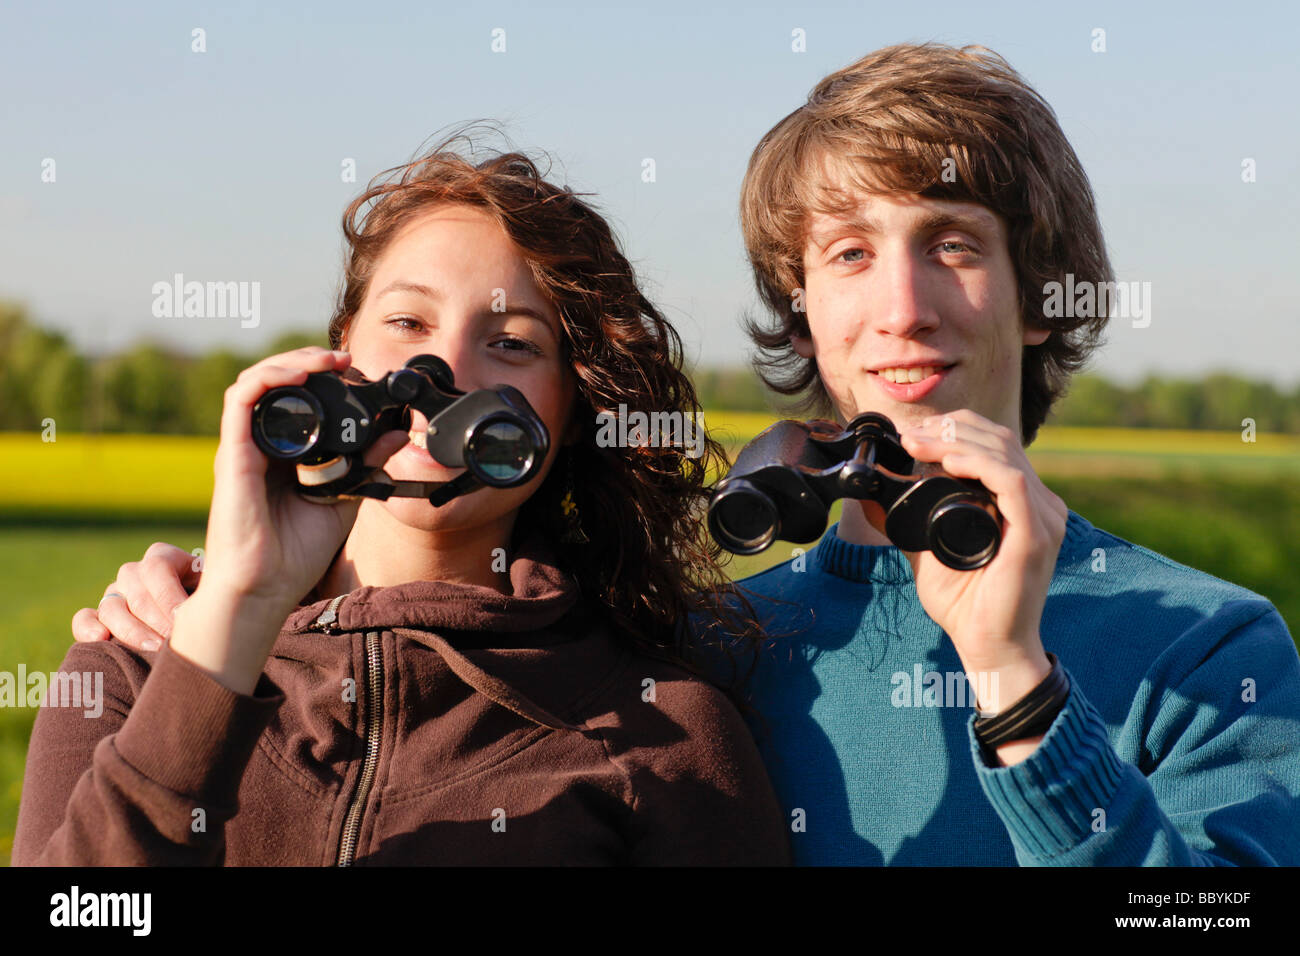 Couple using binoculars - Stock Image